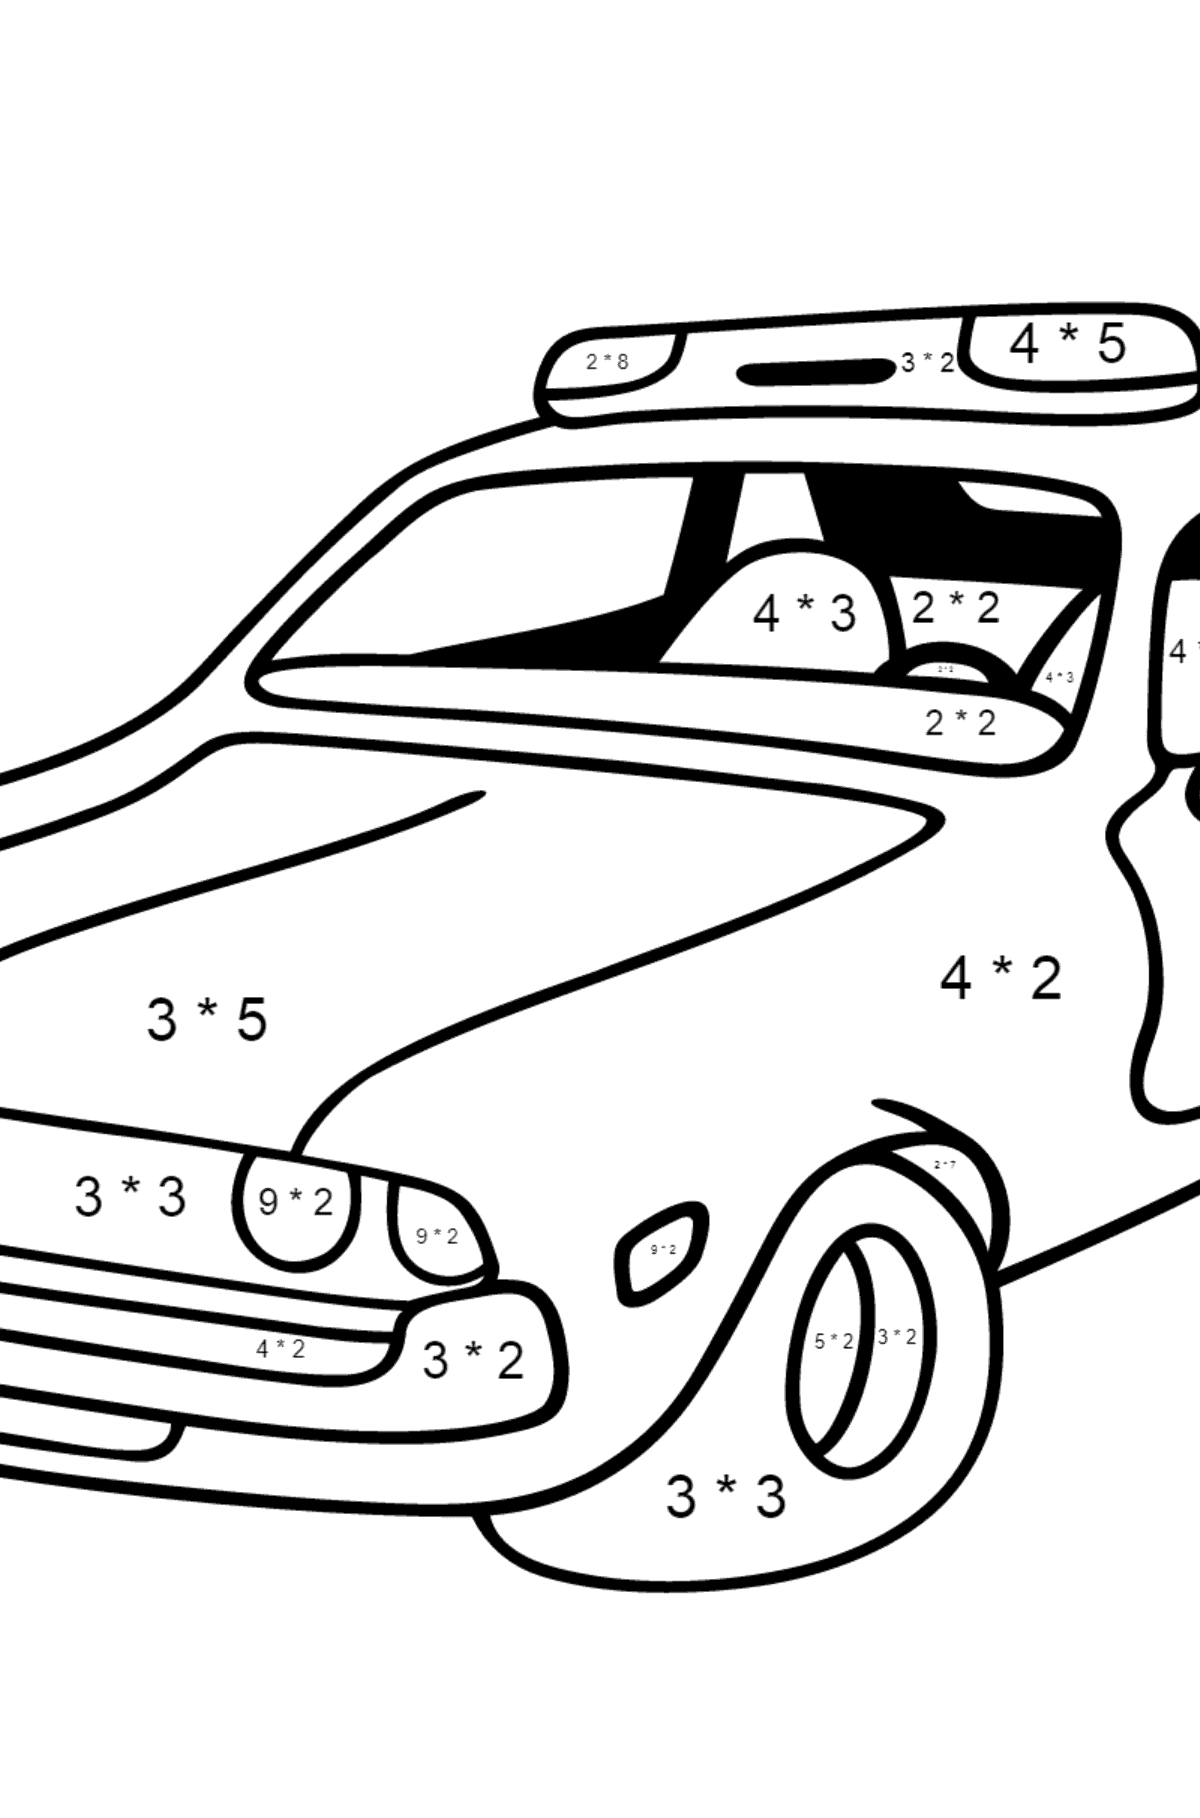 Coloring Page - A Red and White Police Car for Kids  - Color by Number Multiplication